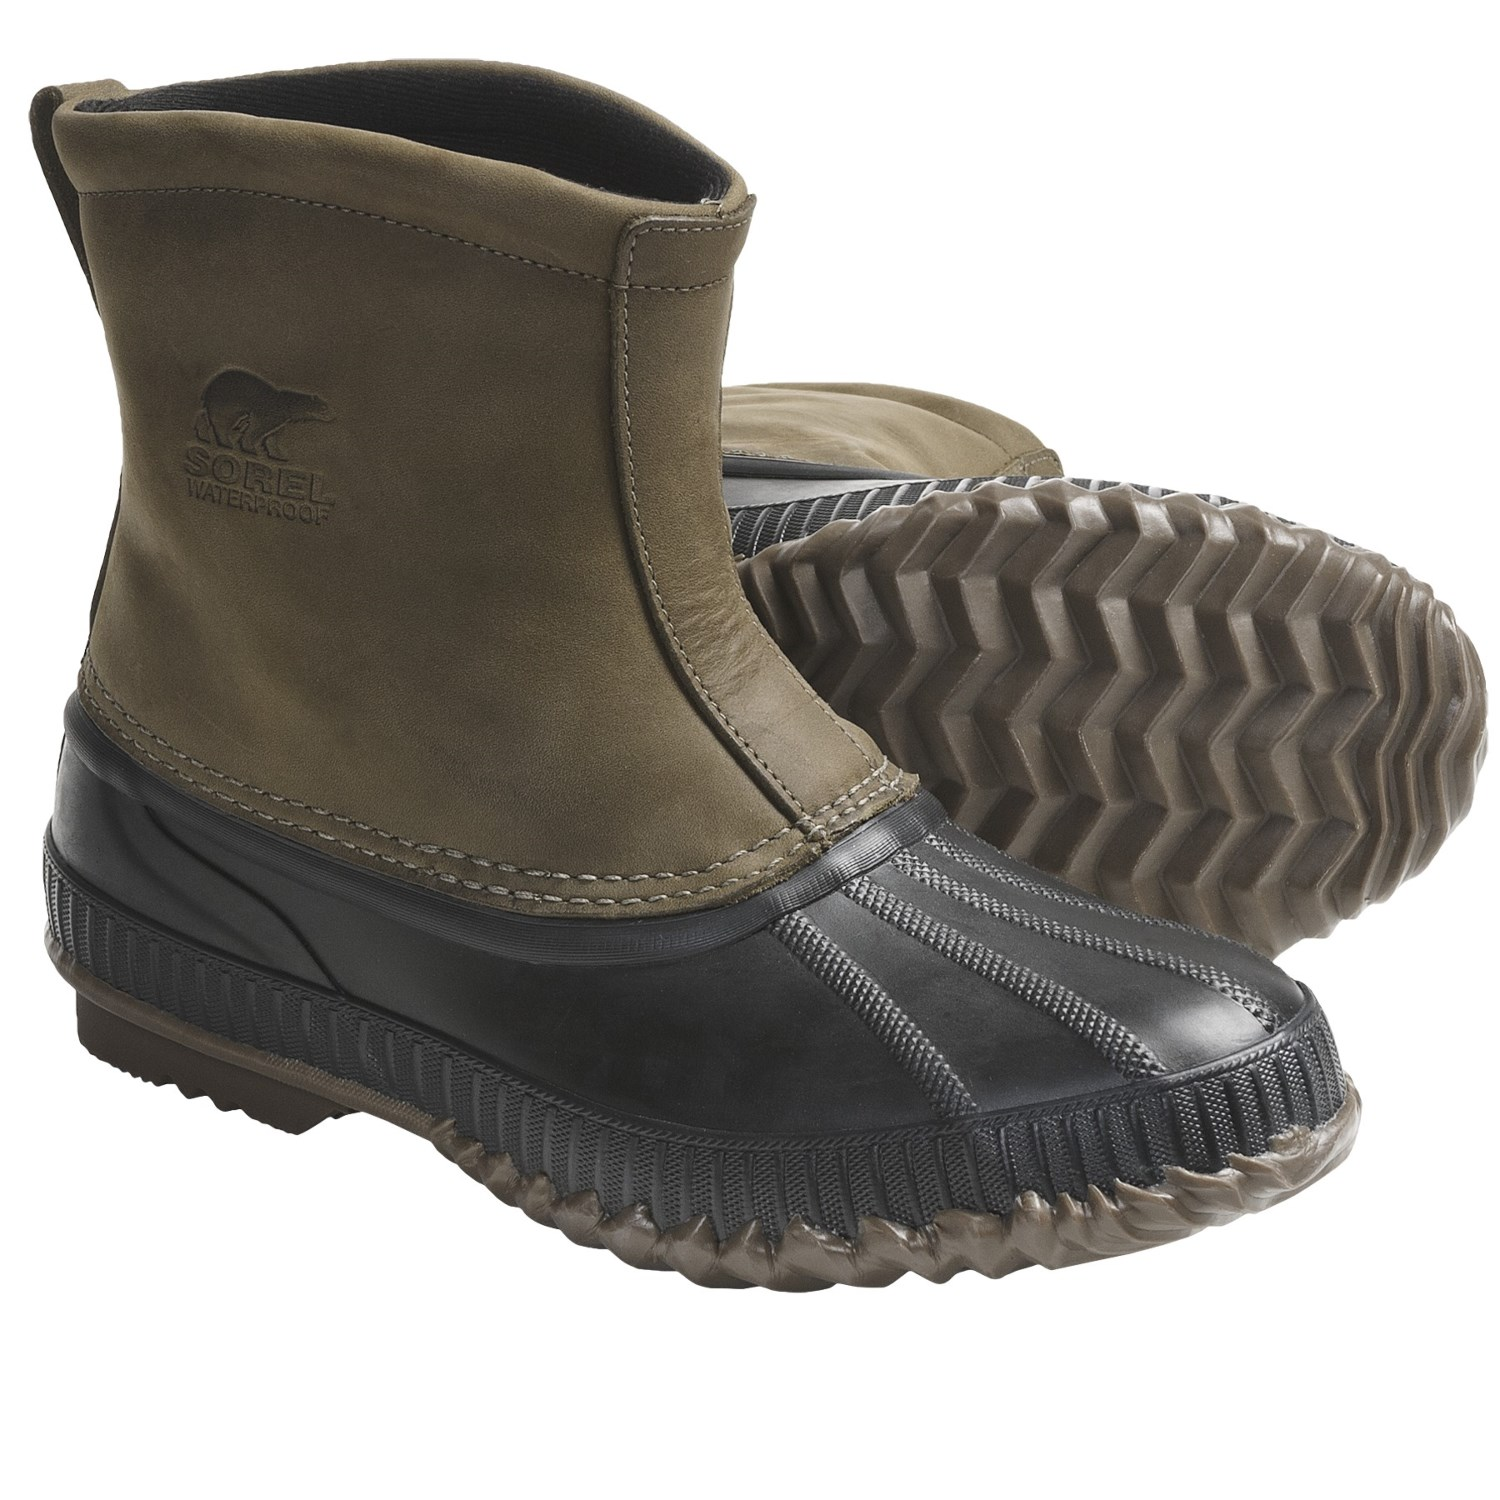 Waterproof-Insulated Leather Boots - Slip-On (For Men) in Breen